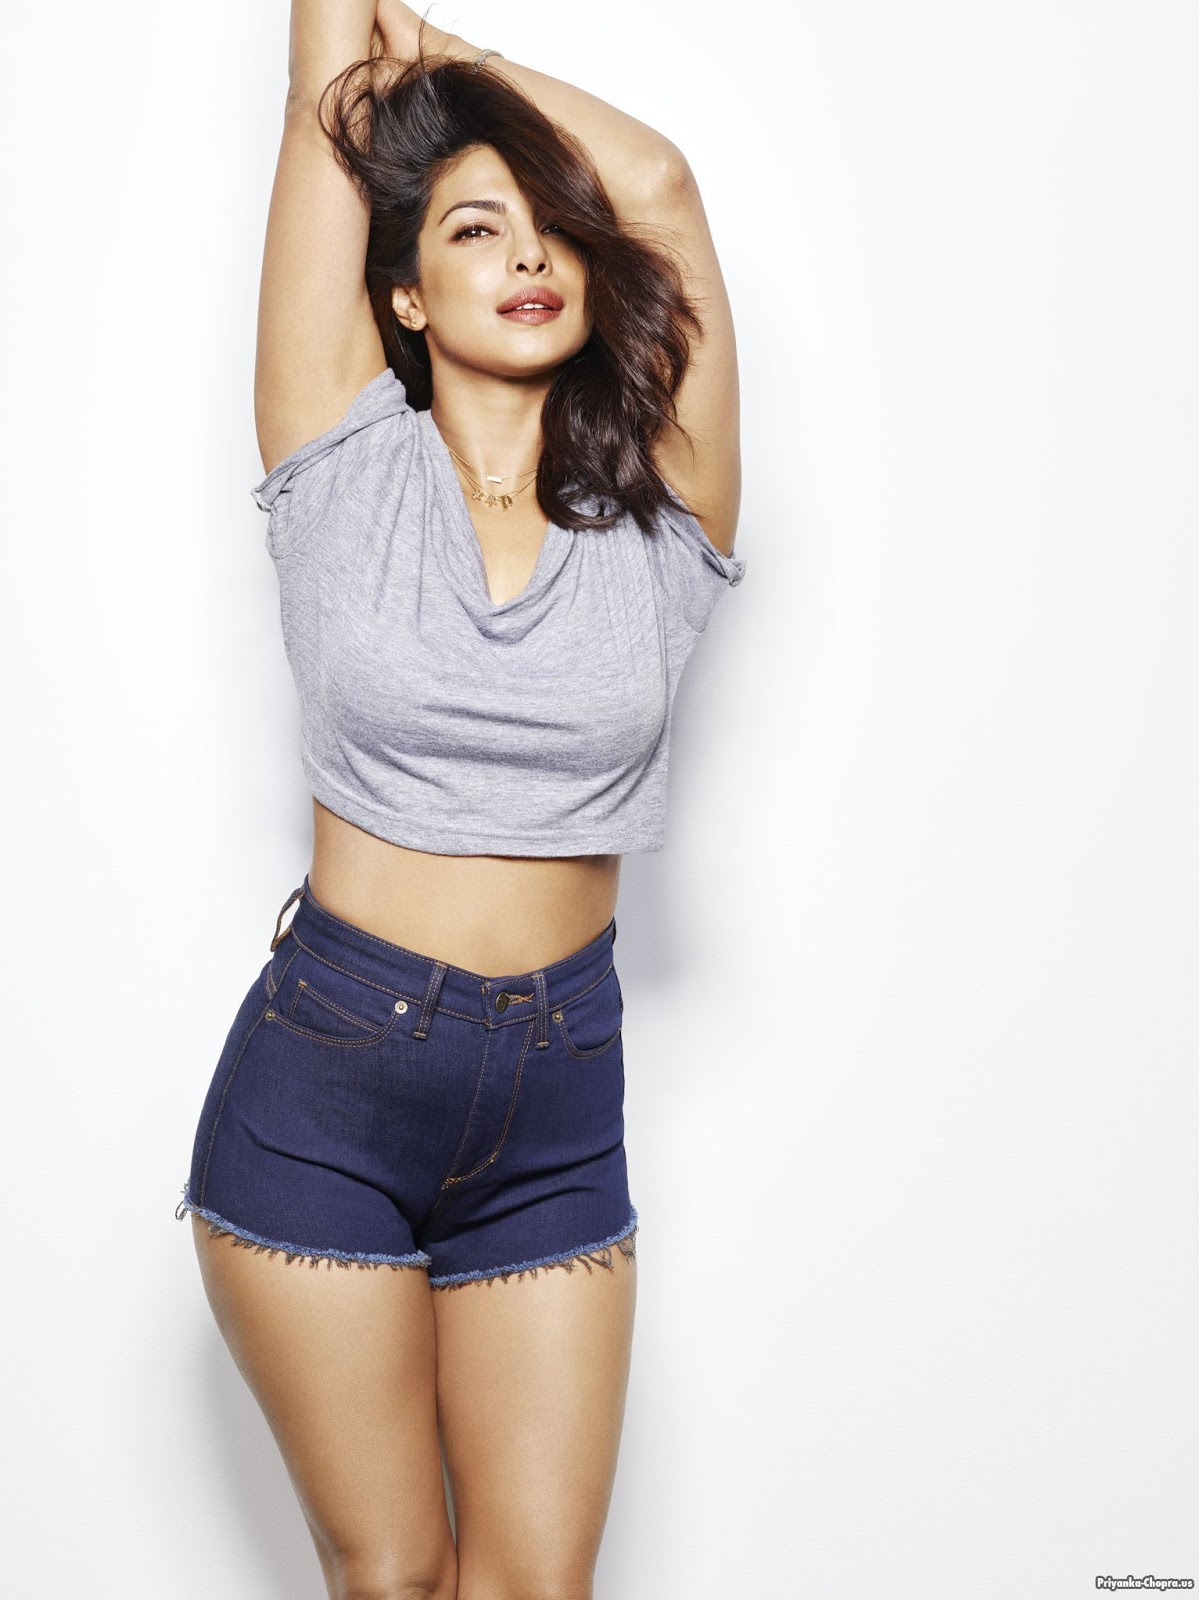 Priyanka Chopra Hot Photo Sexy